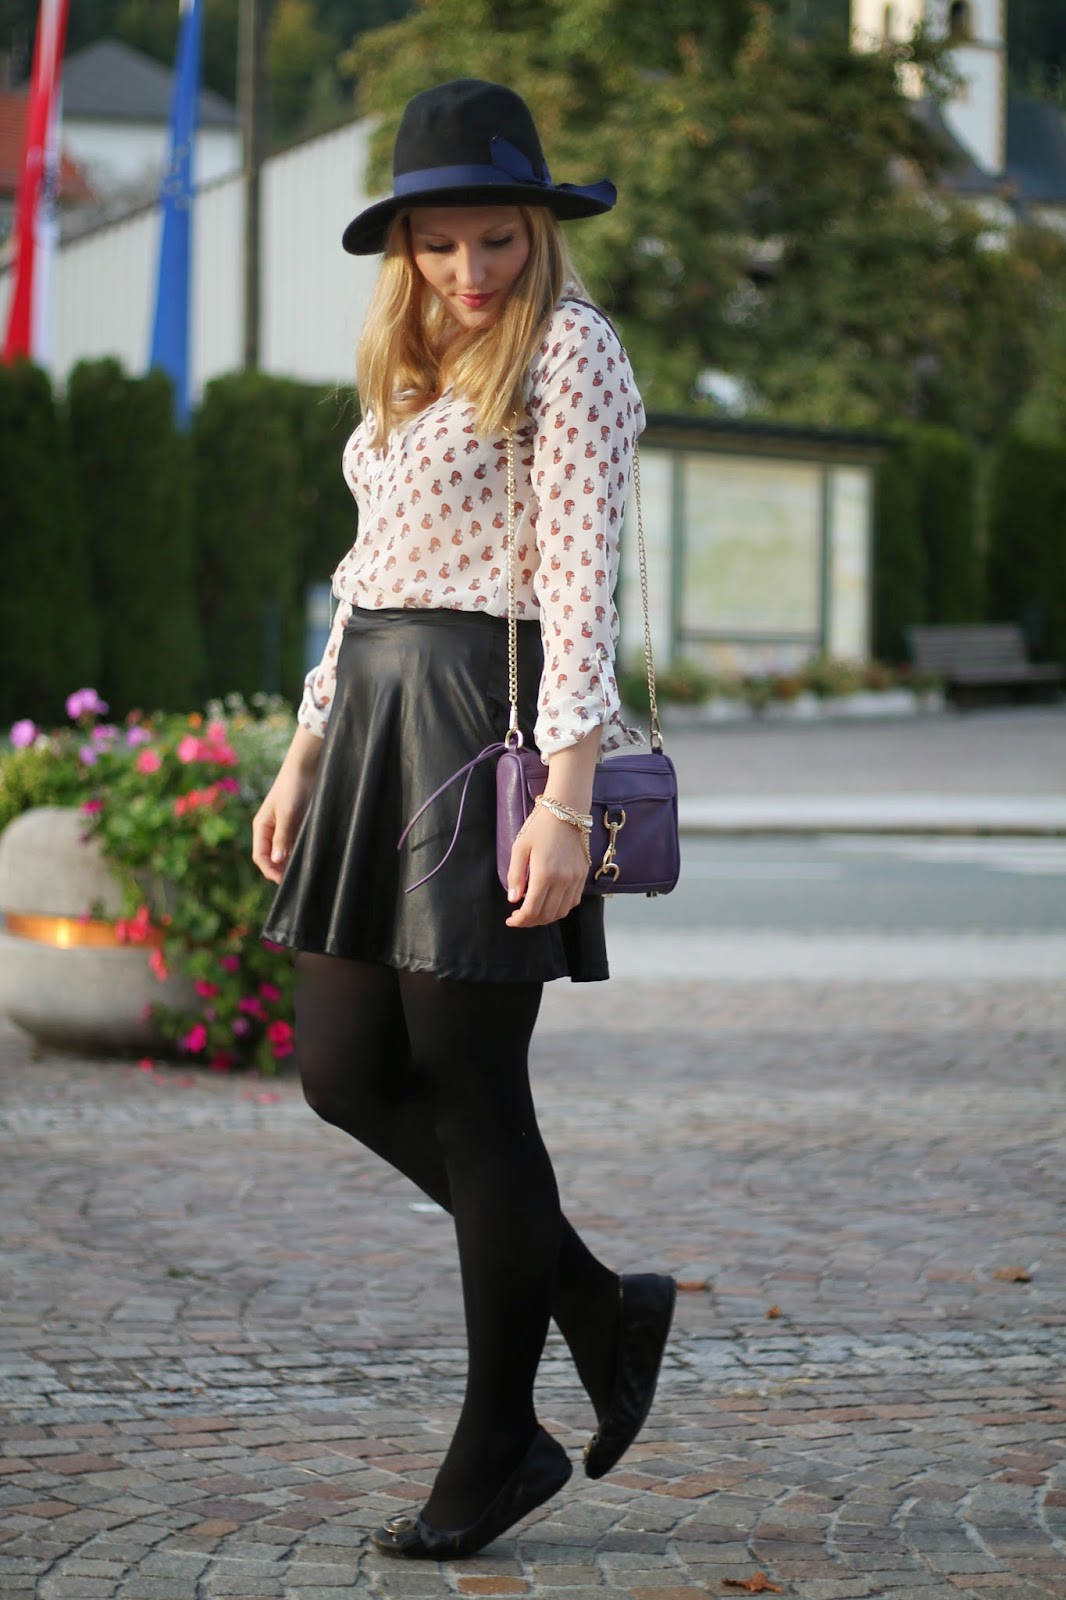 Fashionblogger Austria / Österreich / Deutsch / German / Kärnten / Carinthia / Klagenfurt / Köttmannsdorf / Spring Look / Classy / Edgy / Autumn / Autumn Style 2014 / Autumn Look / Fashionista Look / Rebecca Minkoff / Lookalike / Violett Purse Oasap / Fox Blouse Ernsting's Family Bluse / Black Blue Hat Hut Forever 21 / Black Leather Skirt CLockhouse C&A Schwarzer Lederrock / Burberry Black Flats Schwarze Ballerinas /